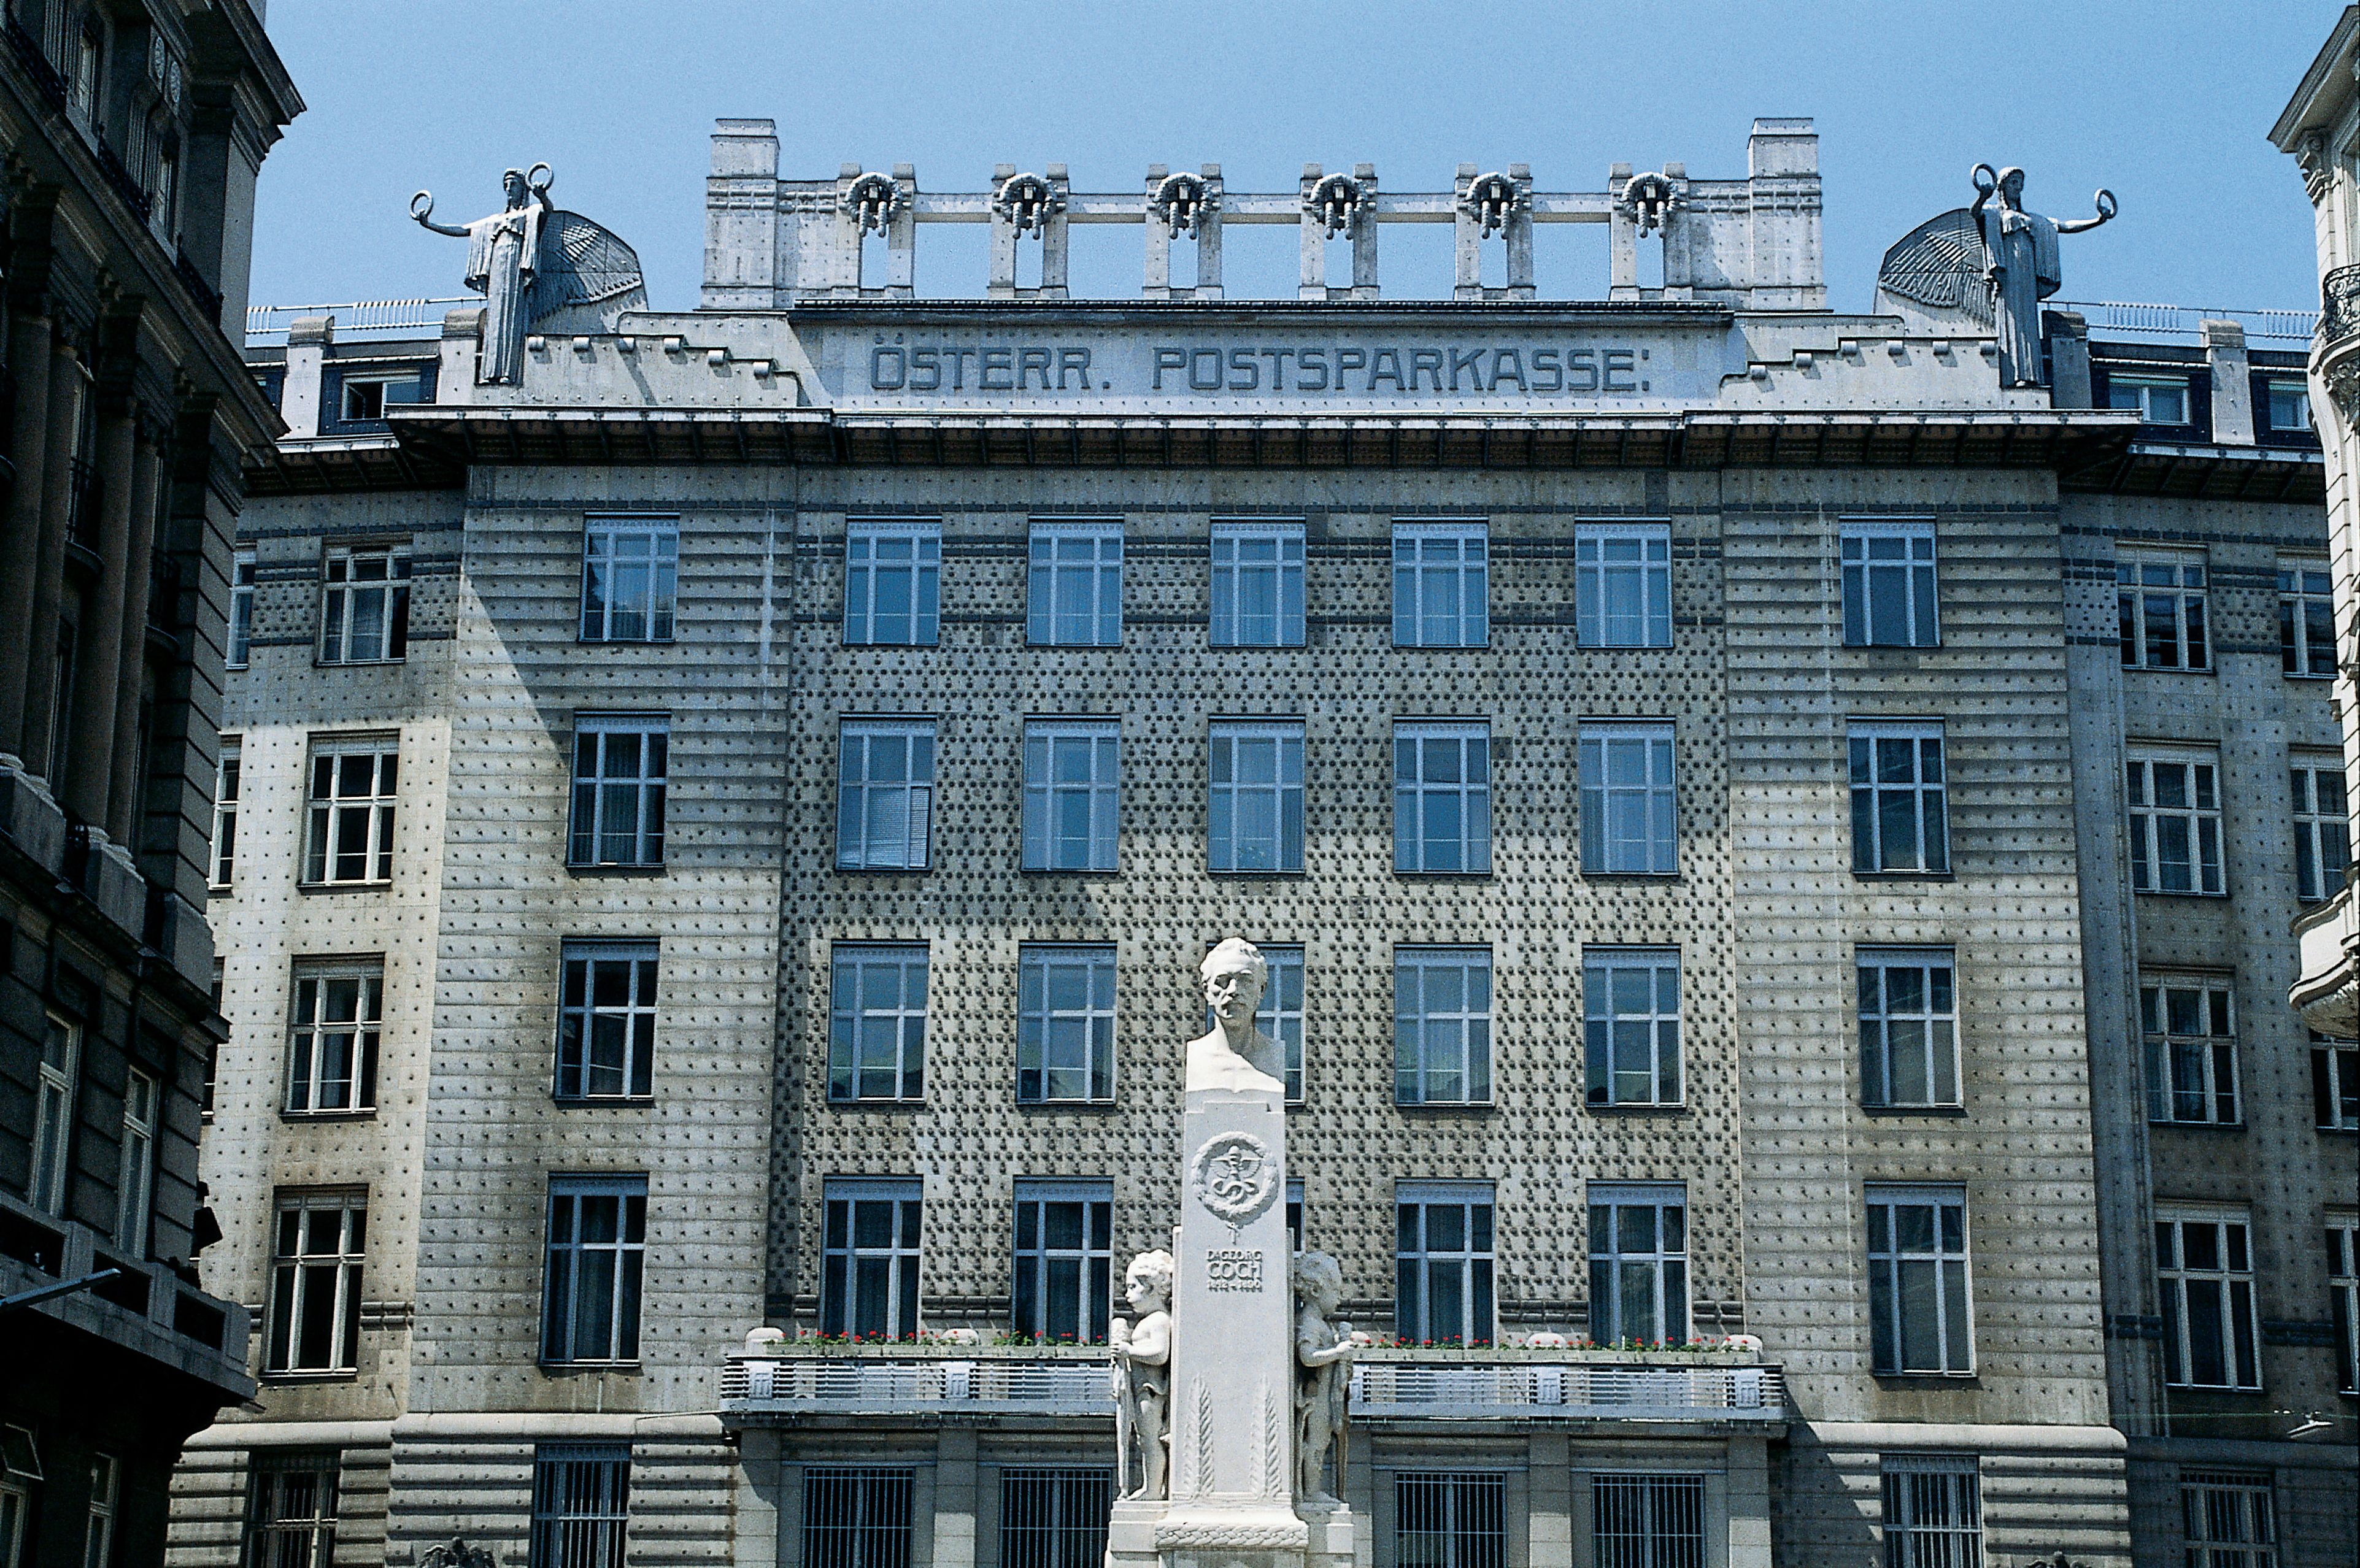 ornate facade of multi-story building emblazoned with roof sculpting and labeled OSTERR POSTSPARKASSE